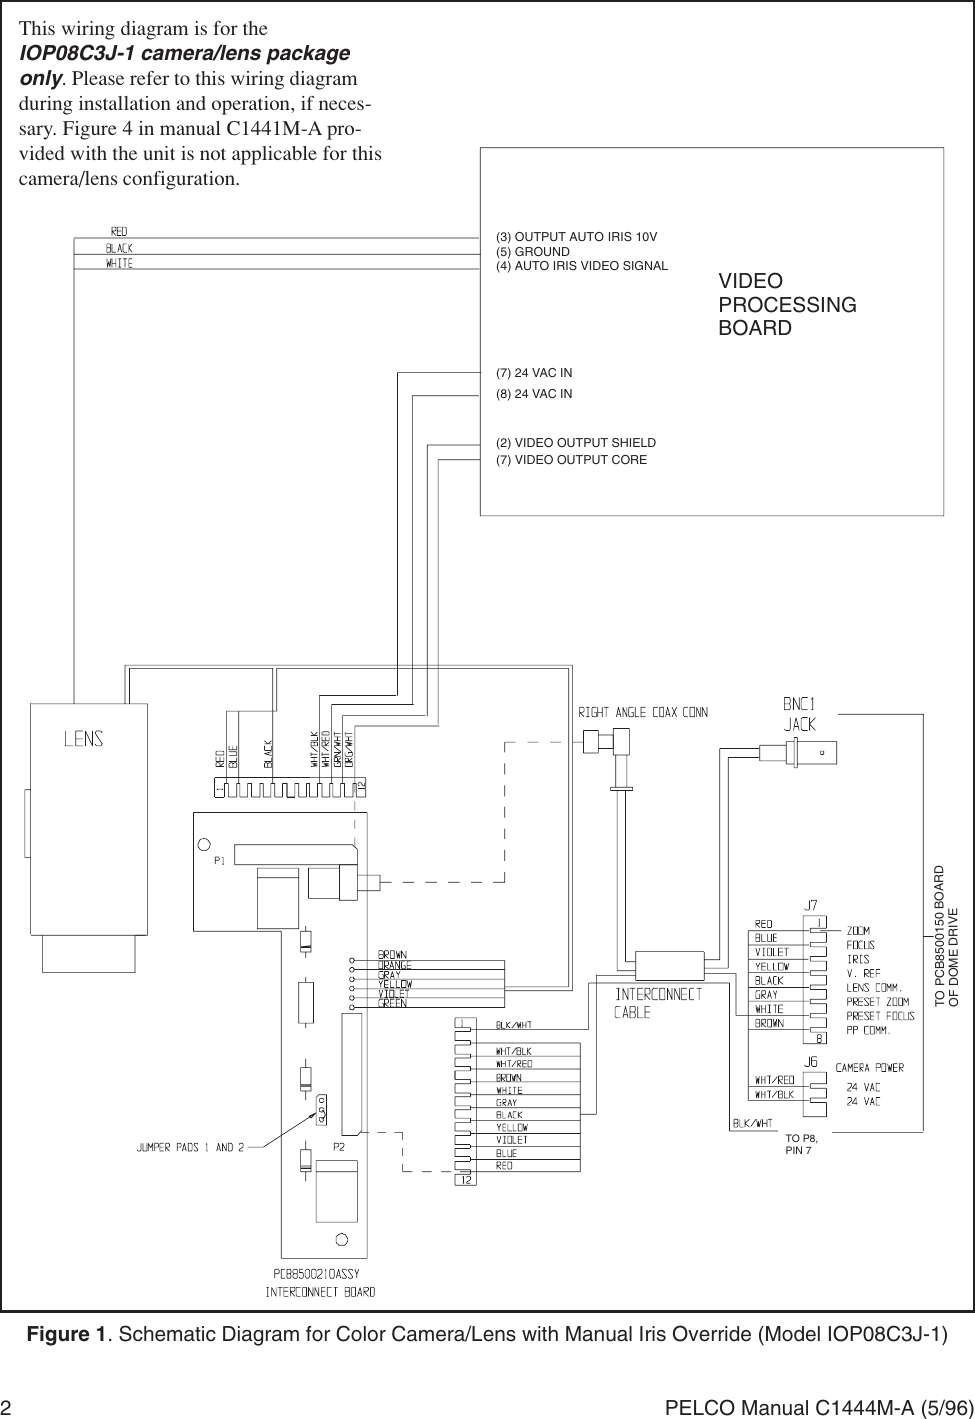 Pelco Wiring Diagrams Schematic Ccd Camera Diagram Lens Iop08c3j 1 Users Manual Page 2